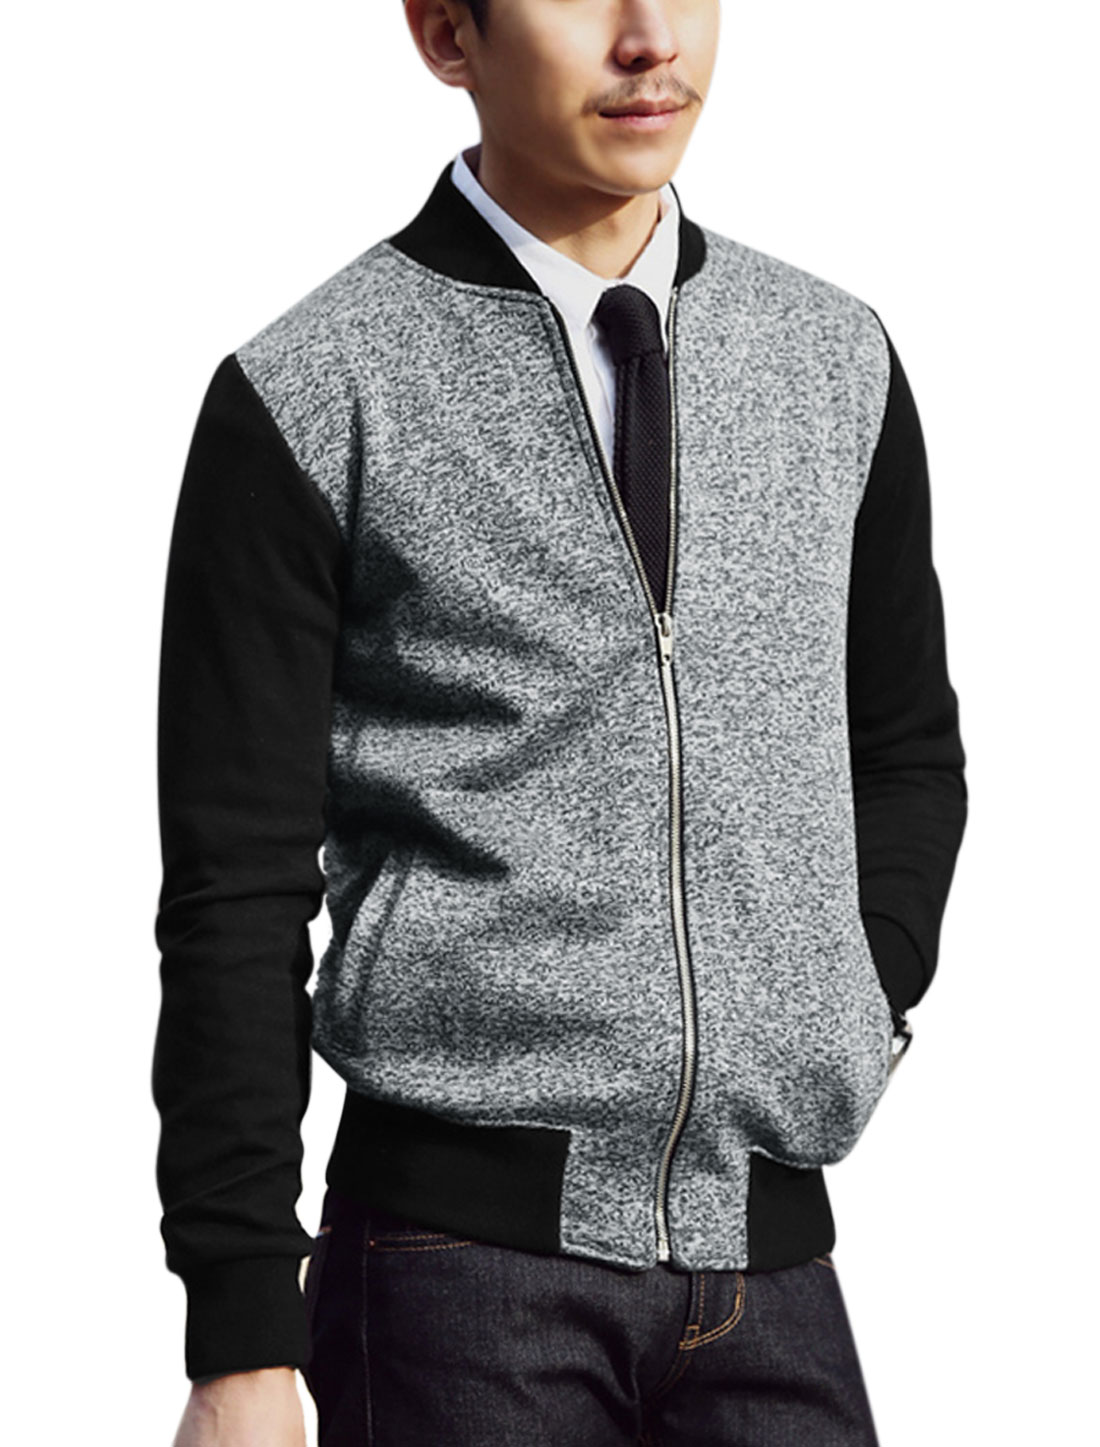 Men Color Block Zip Up Double Slant Pockets Spliced Jacket Gray Black M